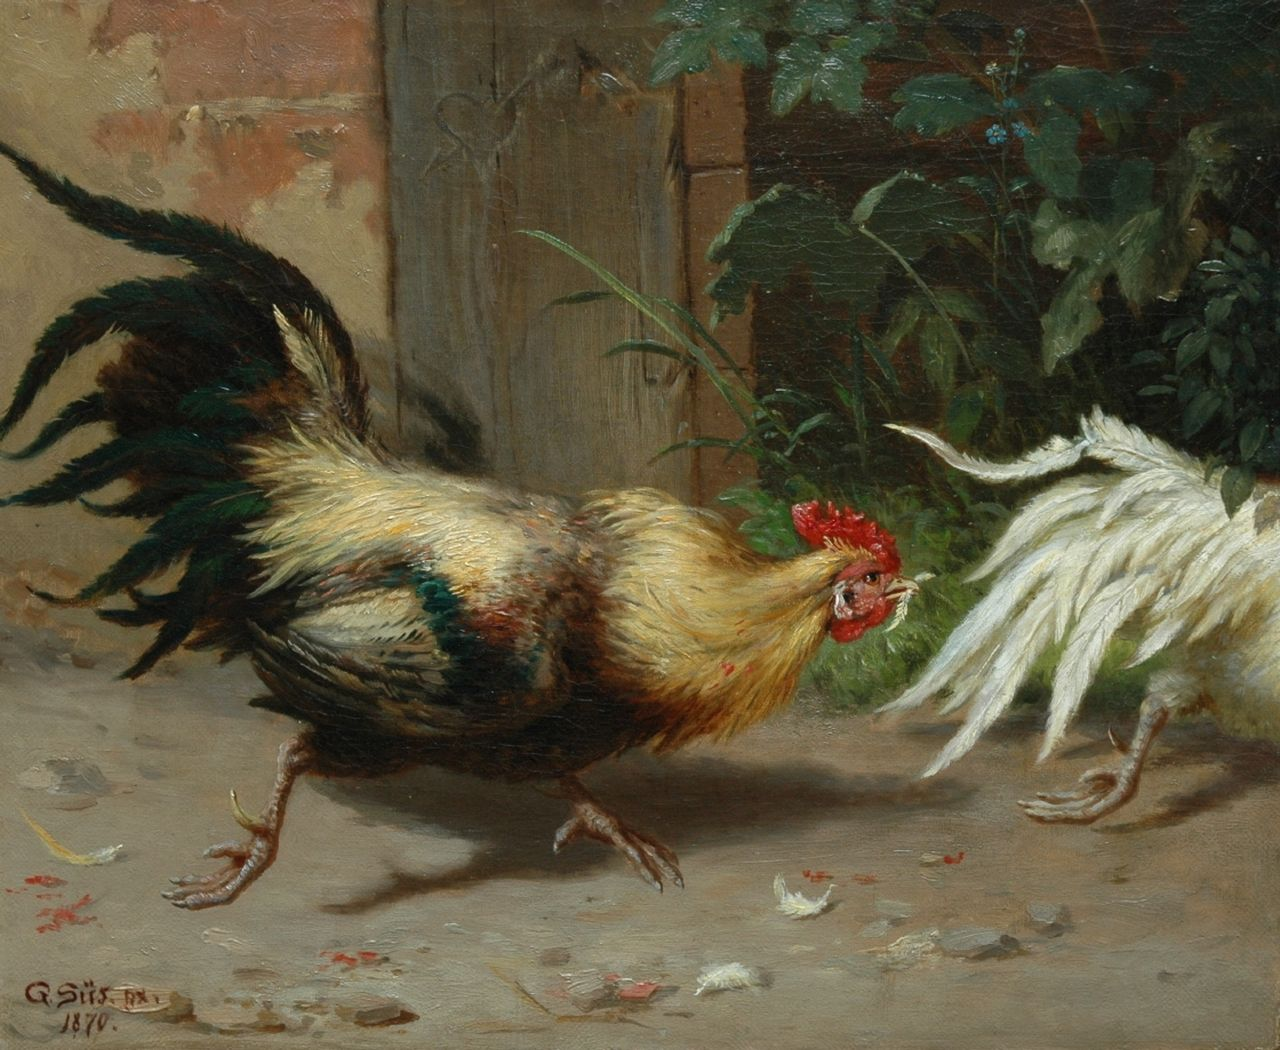 Gustav Süs | Cockfight, oil on canvas, 28.1 x 34.3 cm, signed l.l. and dated 1870